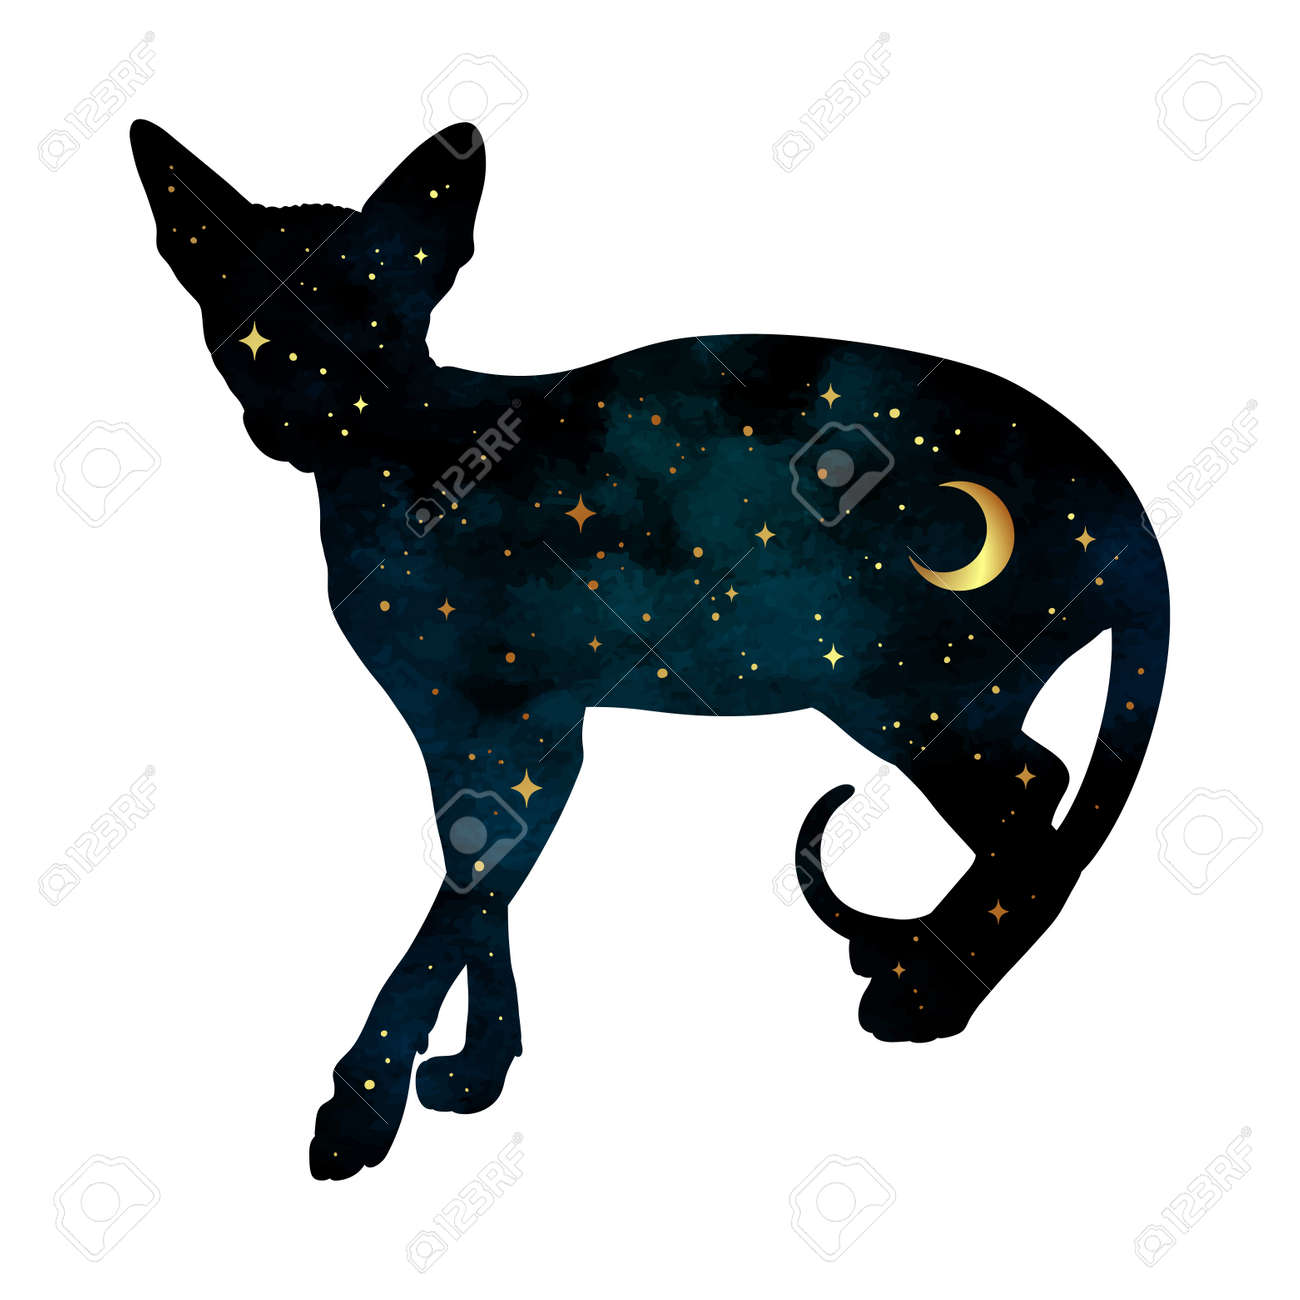 Silhouette of cat with crescent moon and stars isolated. Sticker, print or tattoo design vector illustration. Pagan totem, wiccan familiar spirit art. - 158912706